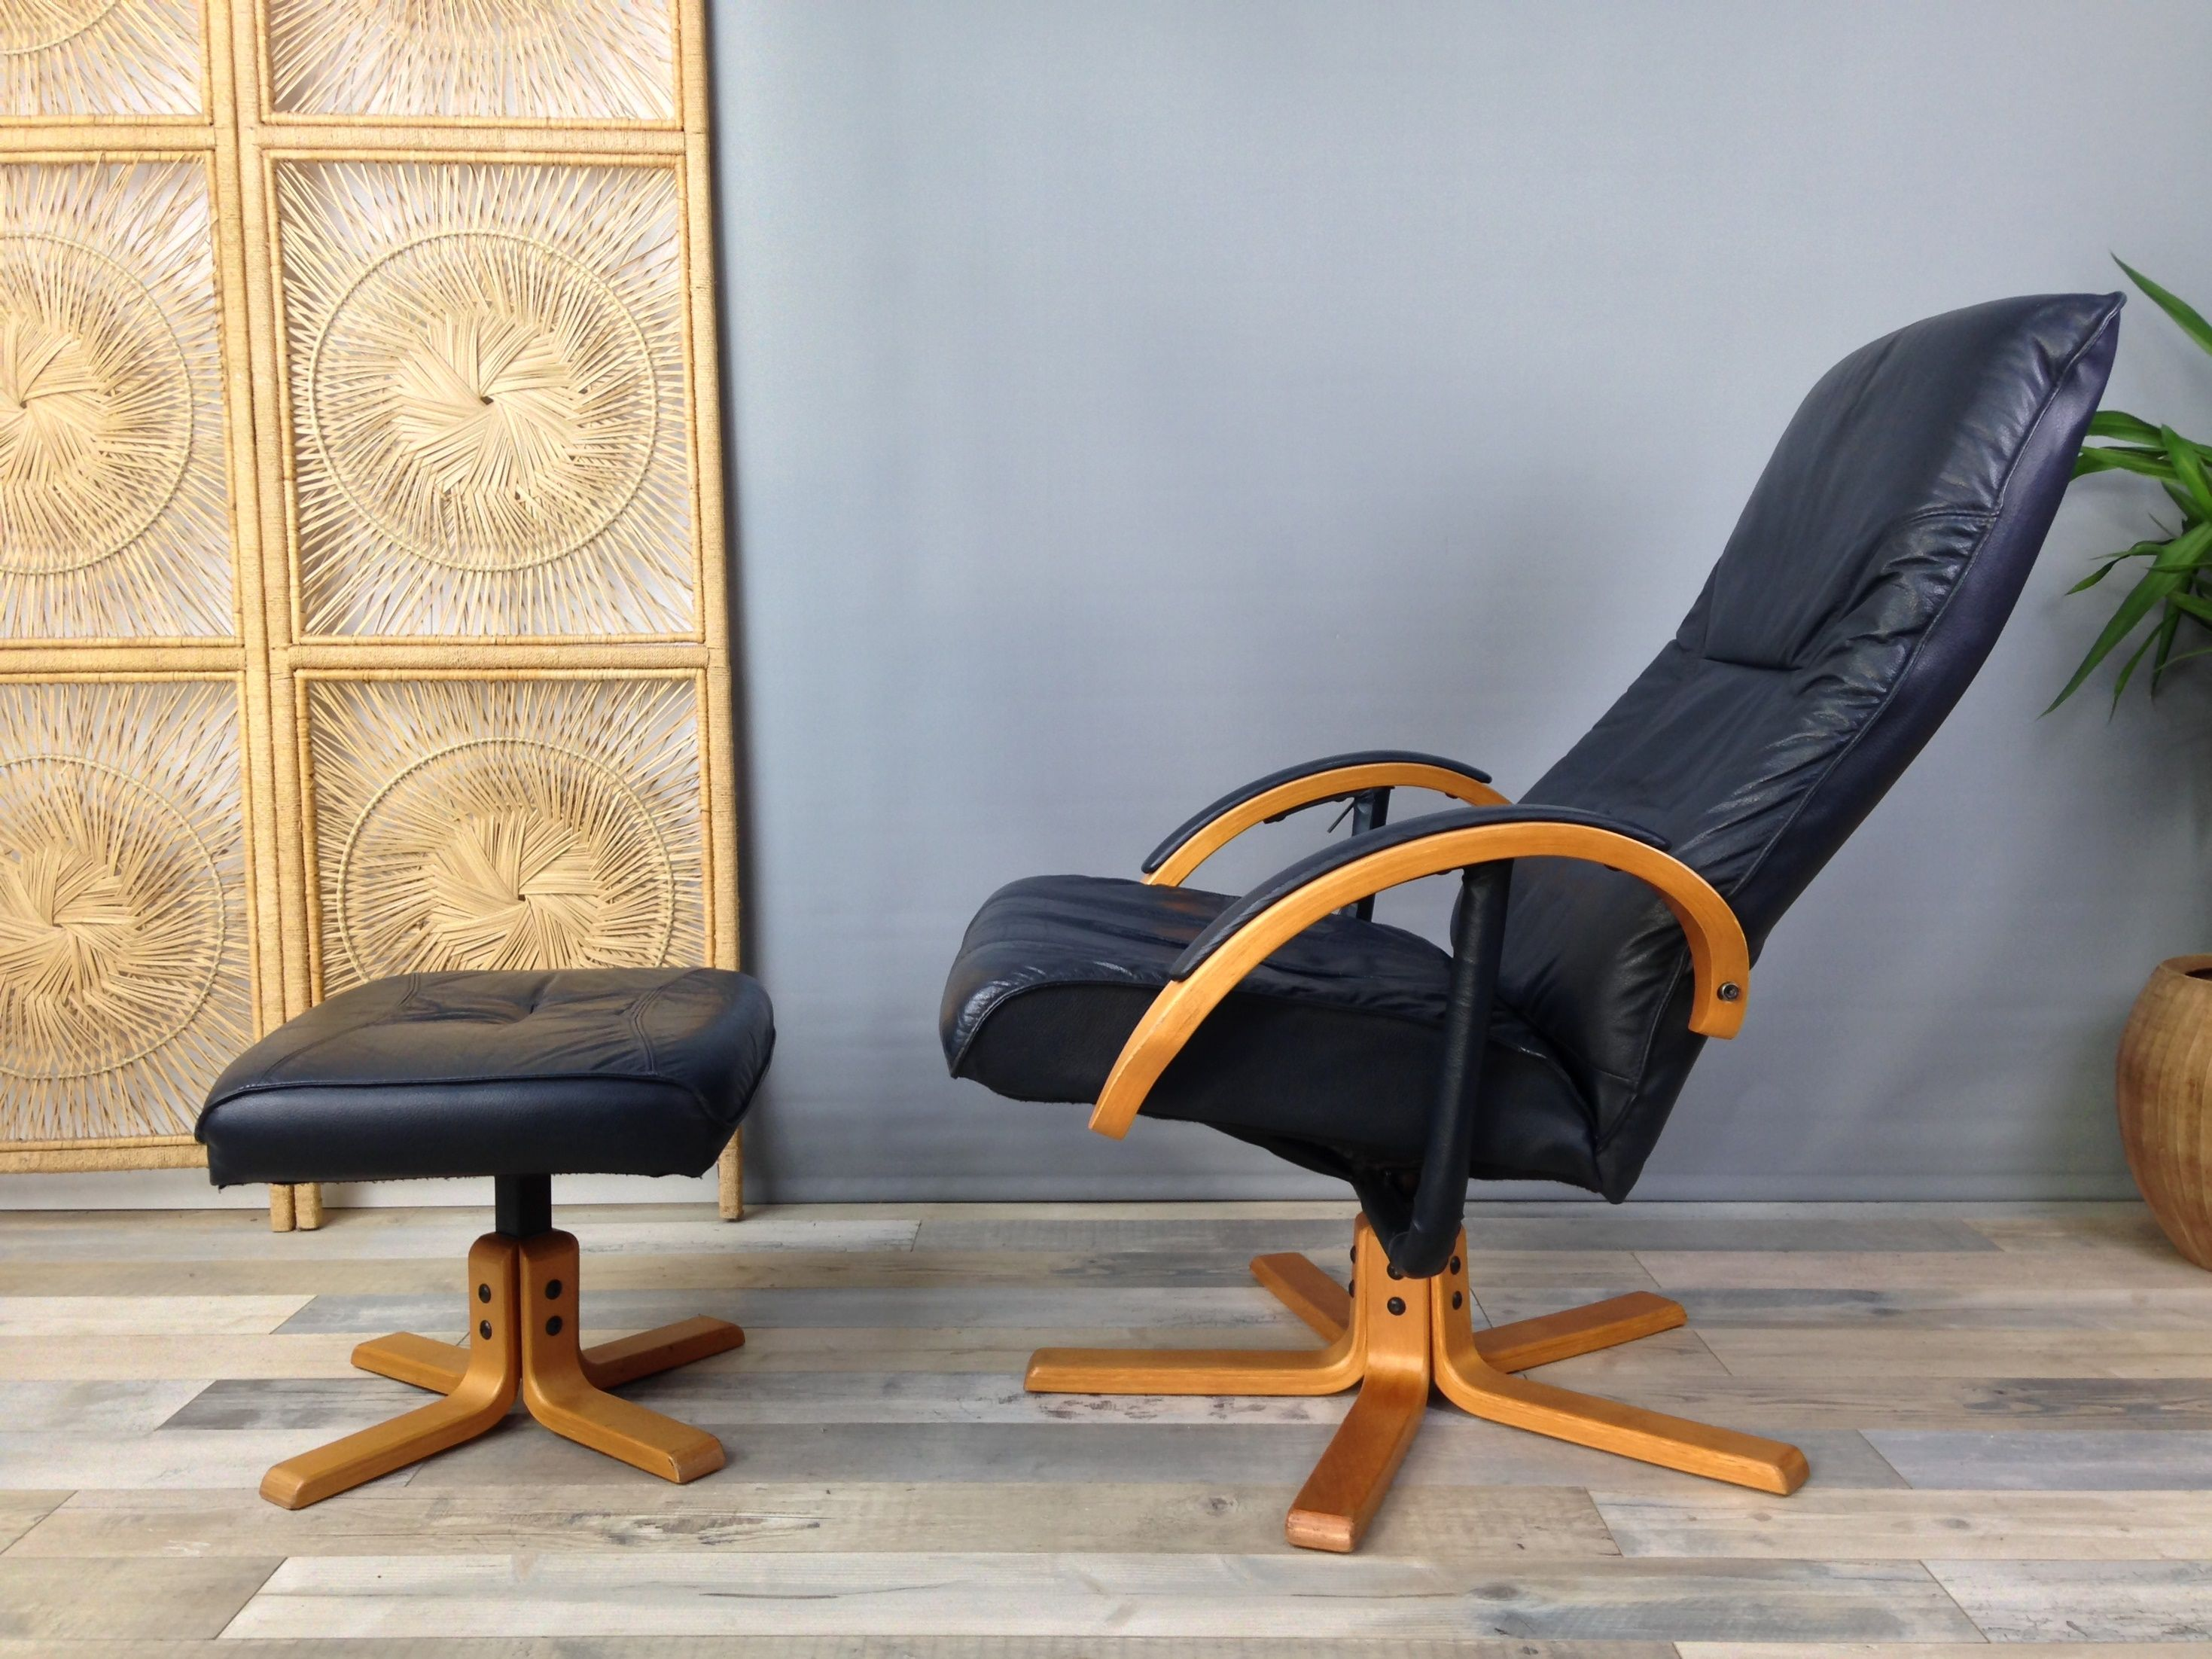 Image of: Vintage Armchair In Leather And Wood With Ottoman By Unico Denmark Design Market